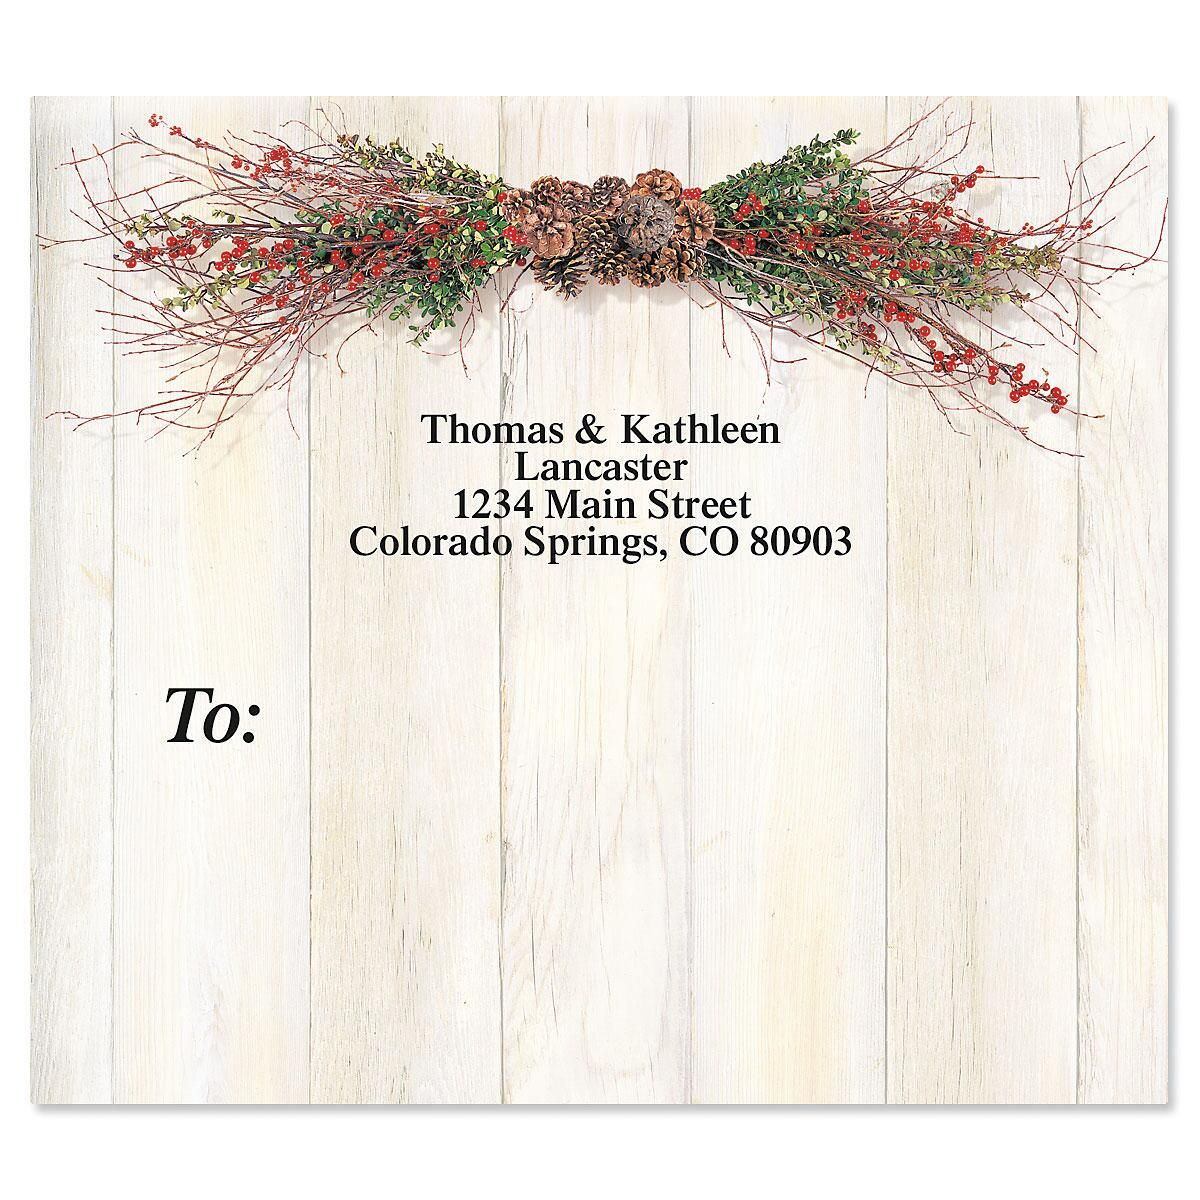 Twigs and Berries Mailing Package Label